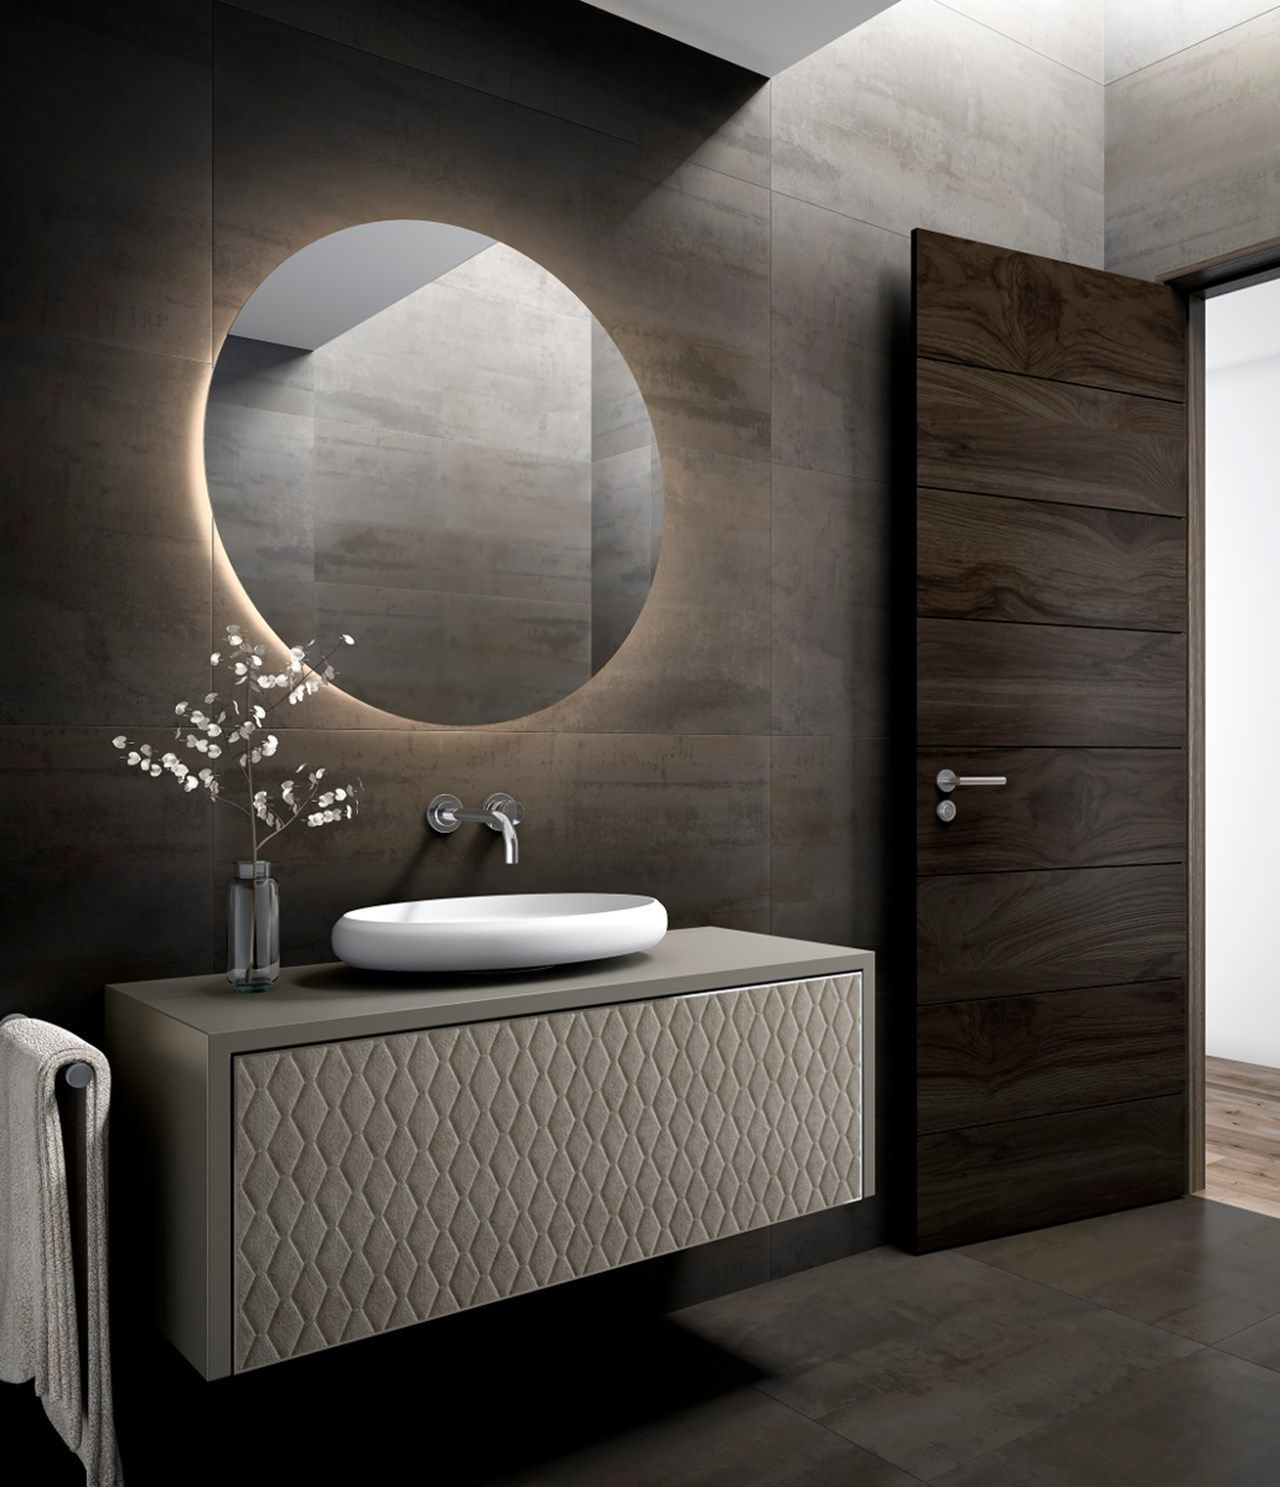 Bath Creations: AURIGA Bath Cabinet. Luxury Bath Creations By Colección